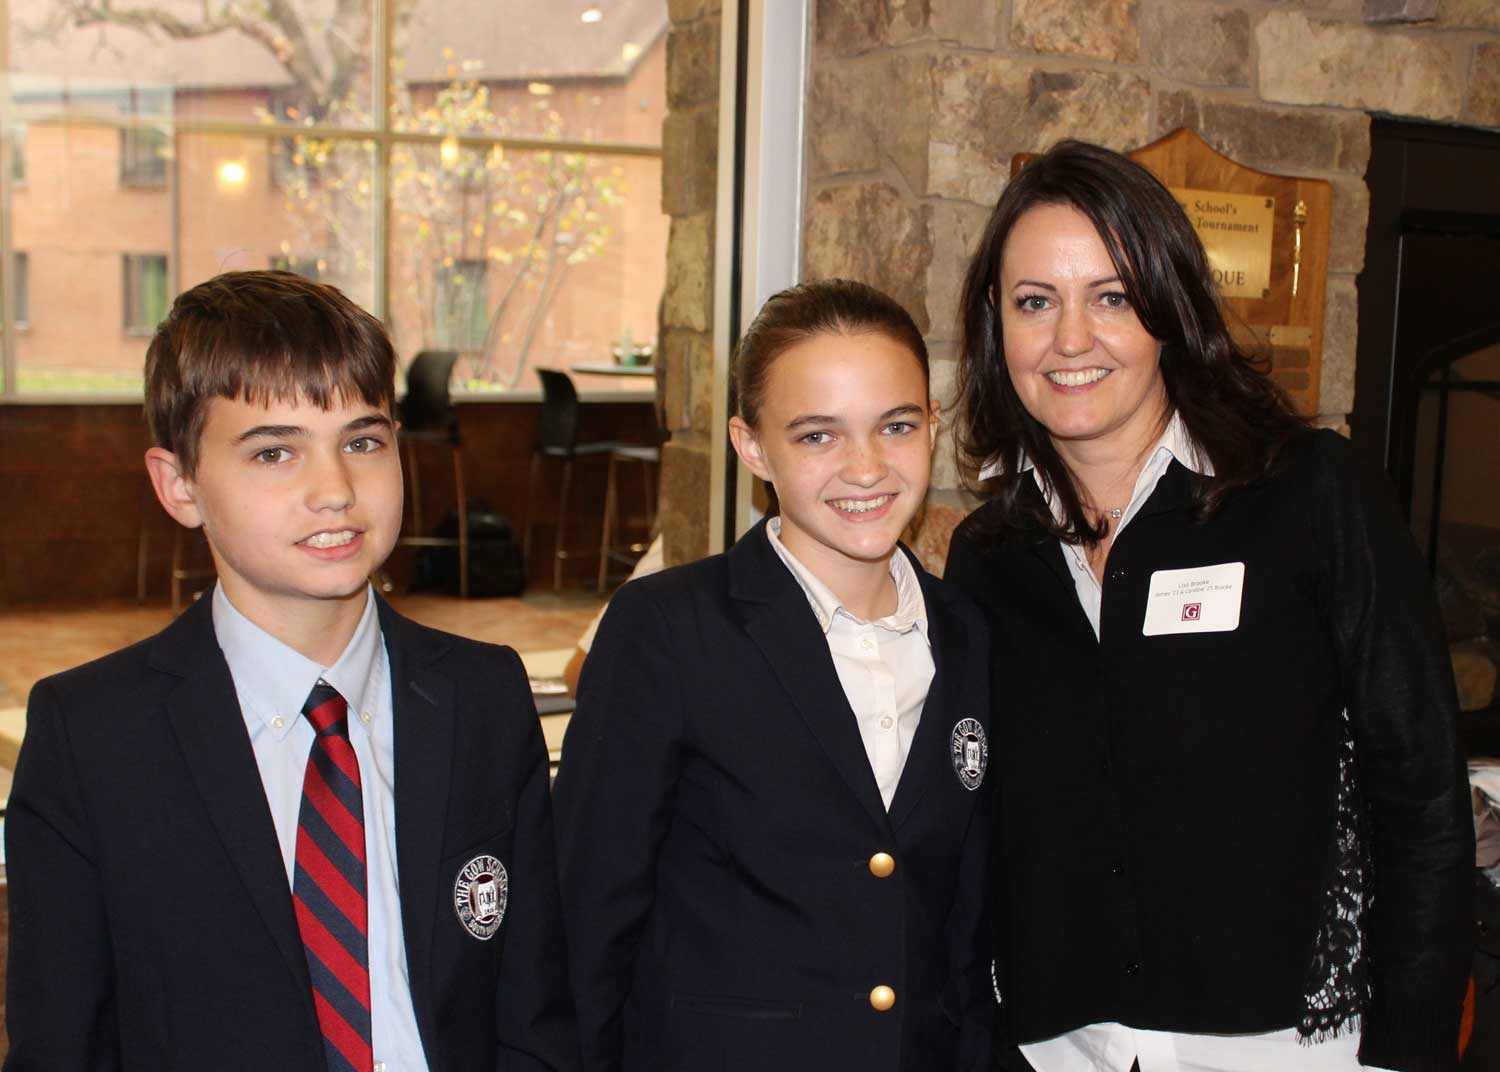 Students with dyslexia at Gow Boarding school on schooladvice